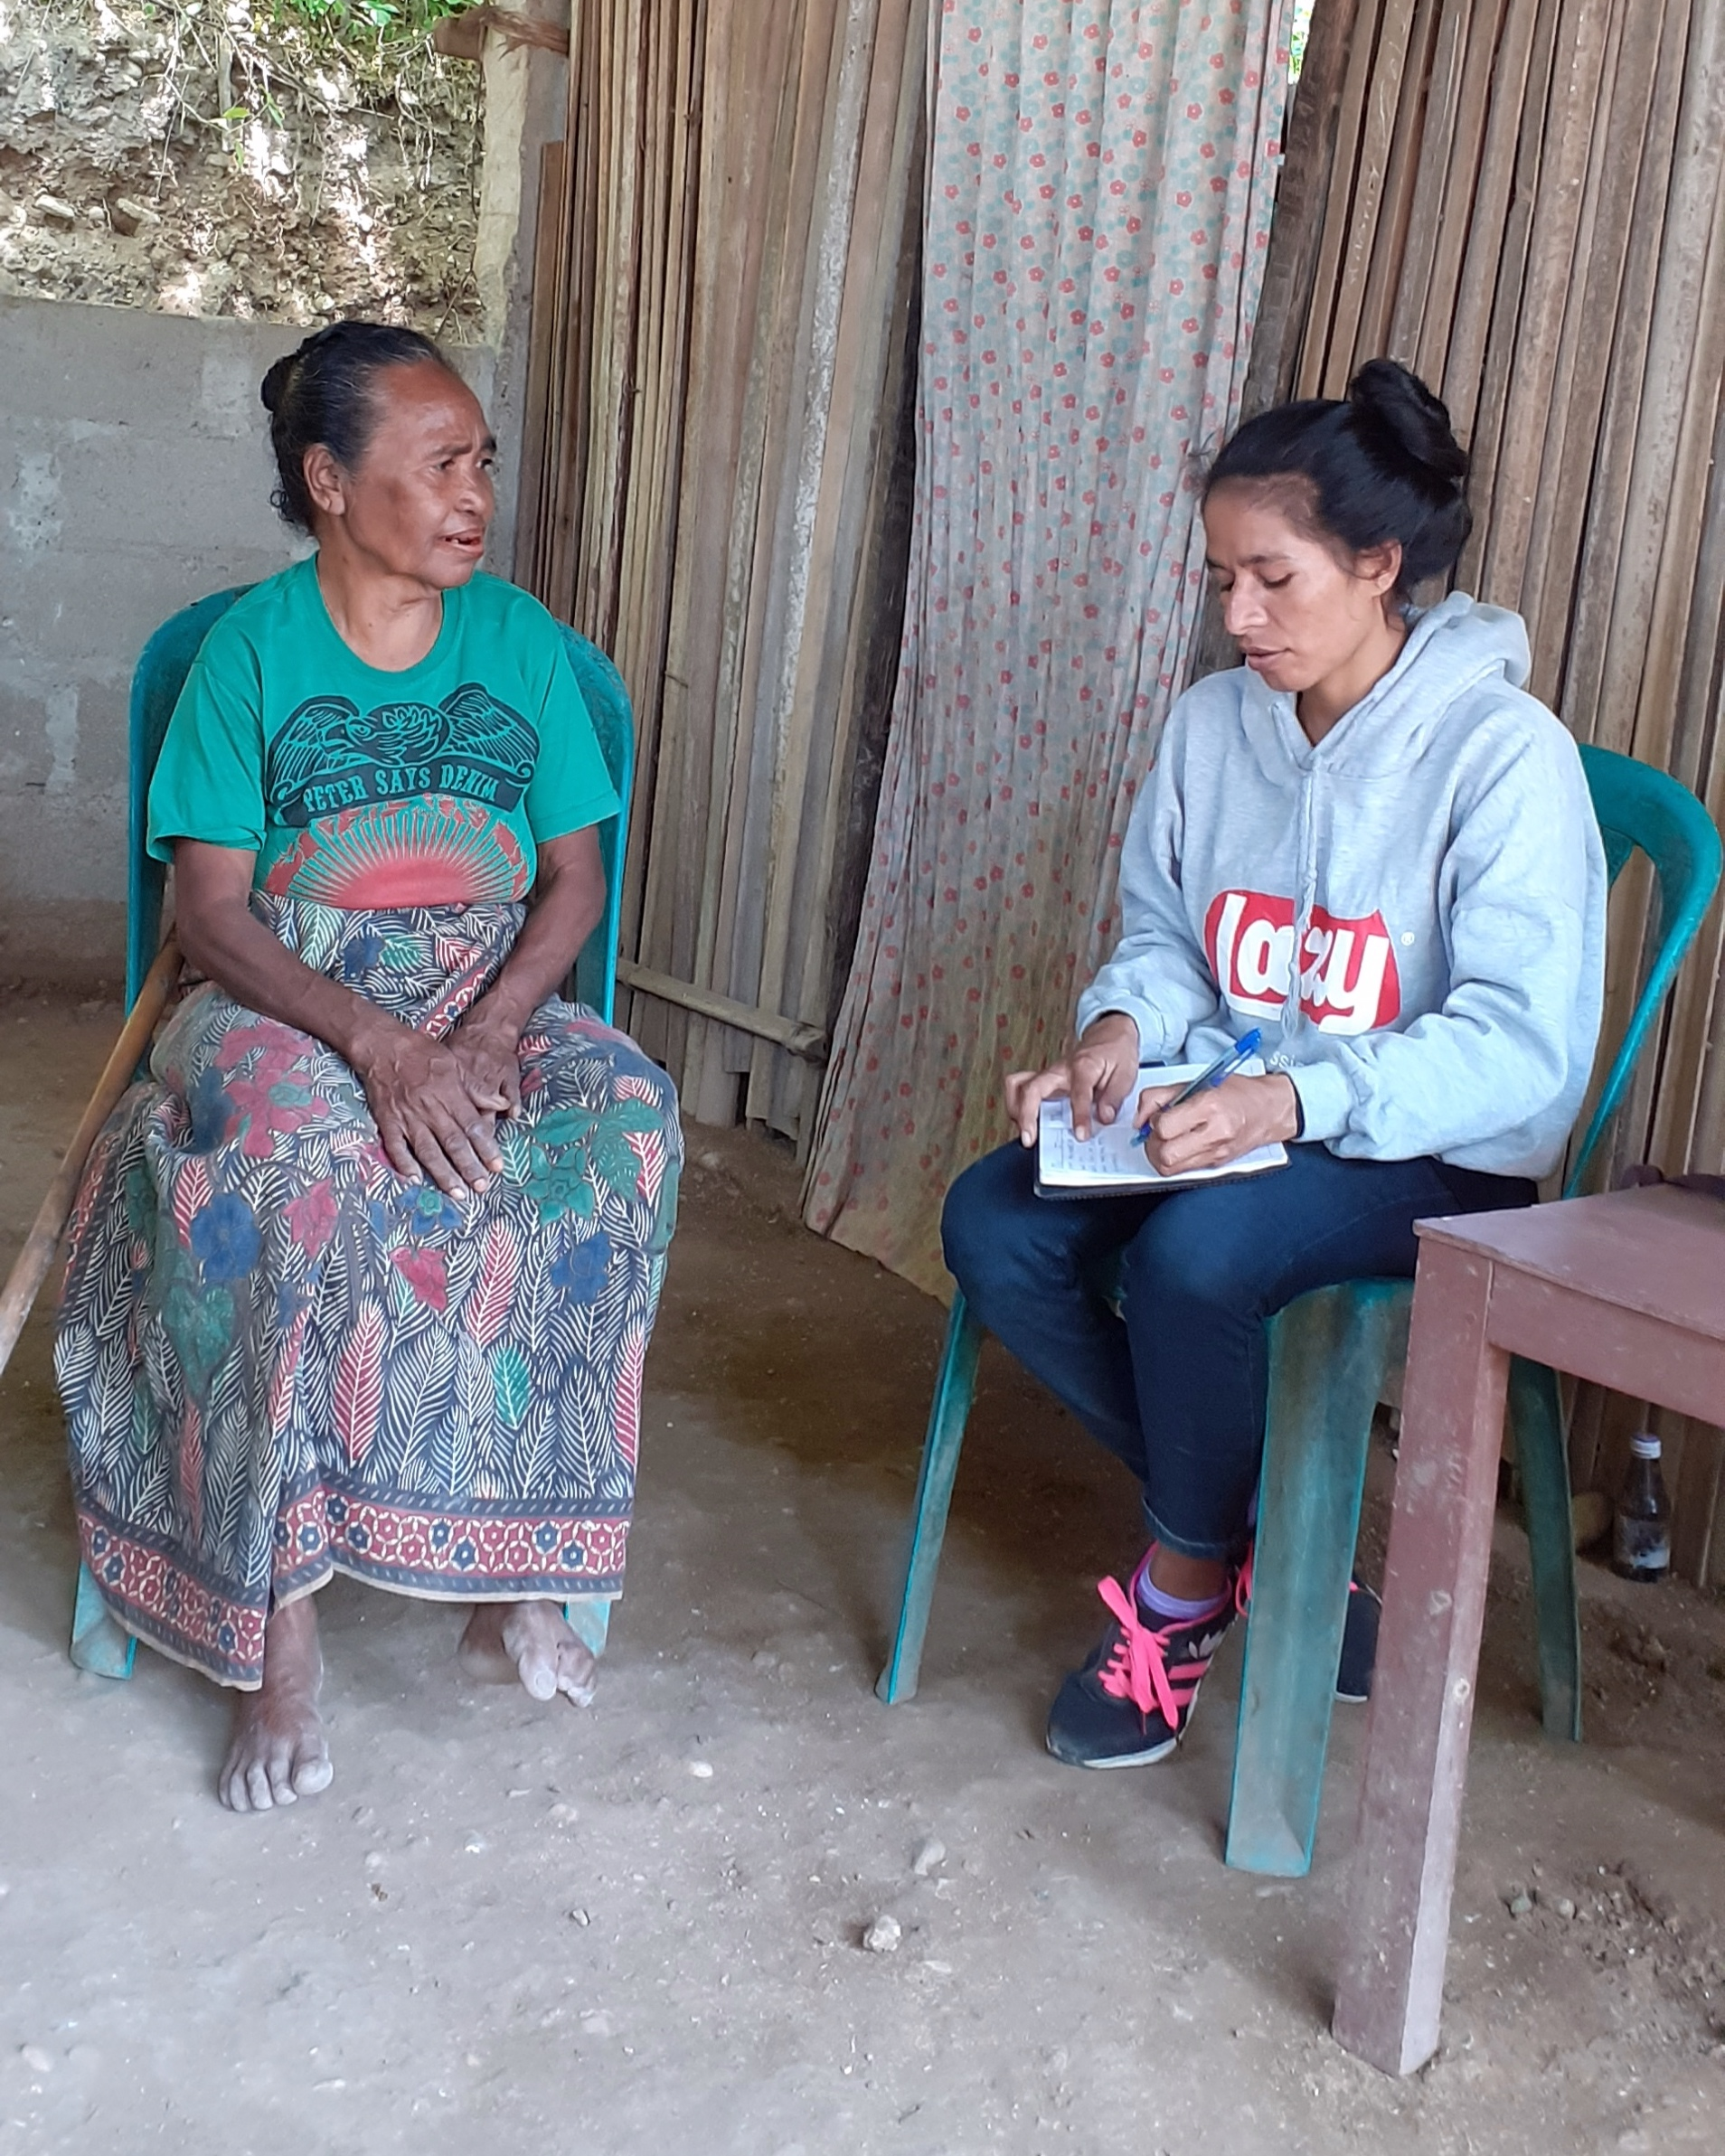 Above: Ililia village resident, Ricardina, is interviewed during the disaster risk assessment process. Photo credit: Gaspar da Silva, ChildFund Timor-Leste.